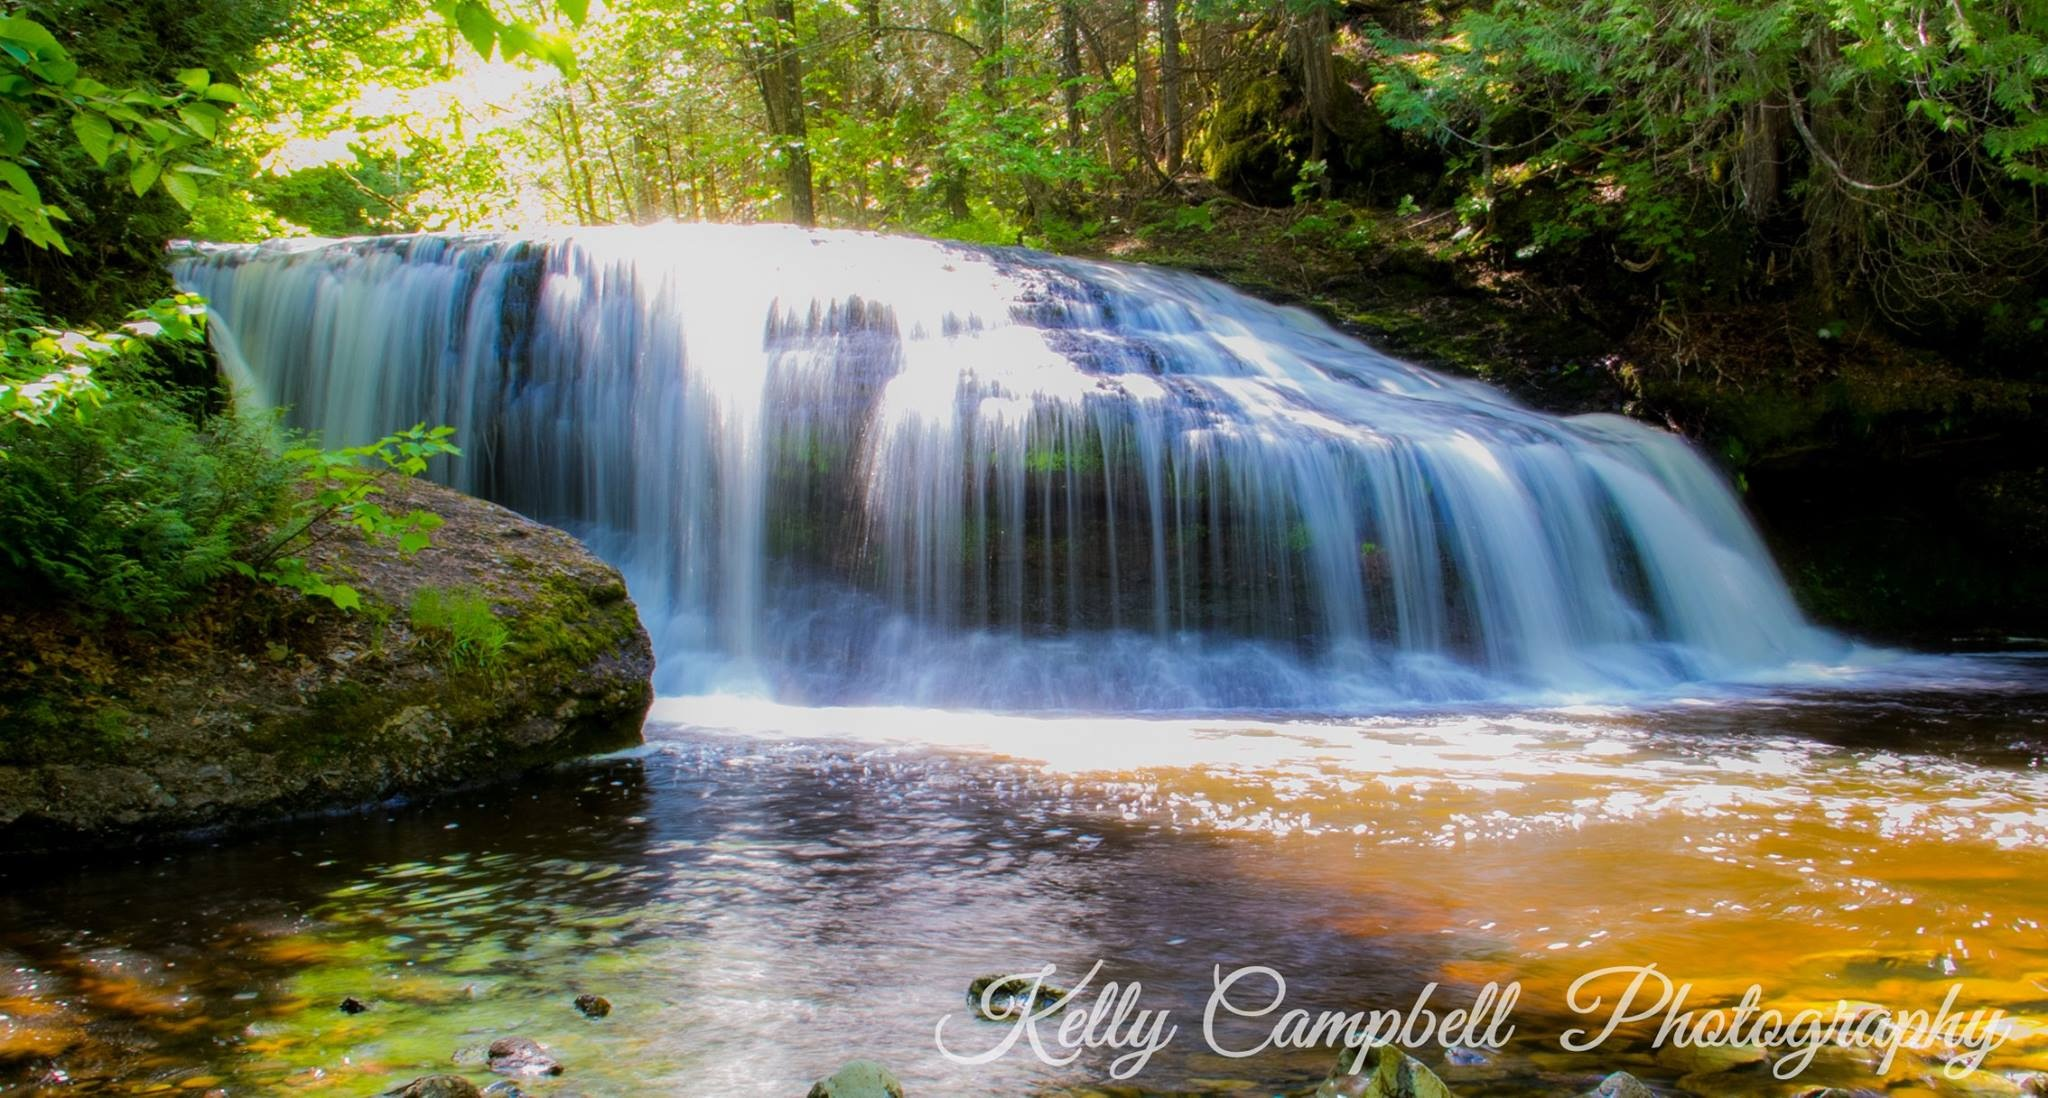 Untitled by Kelly Campbell Photography